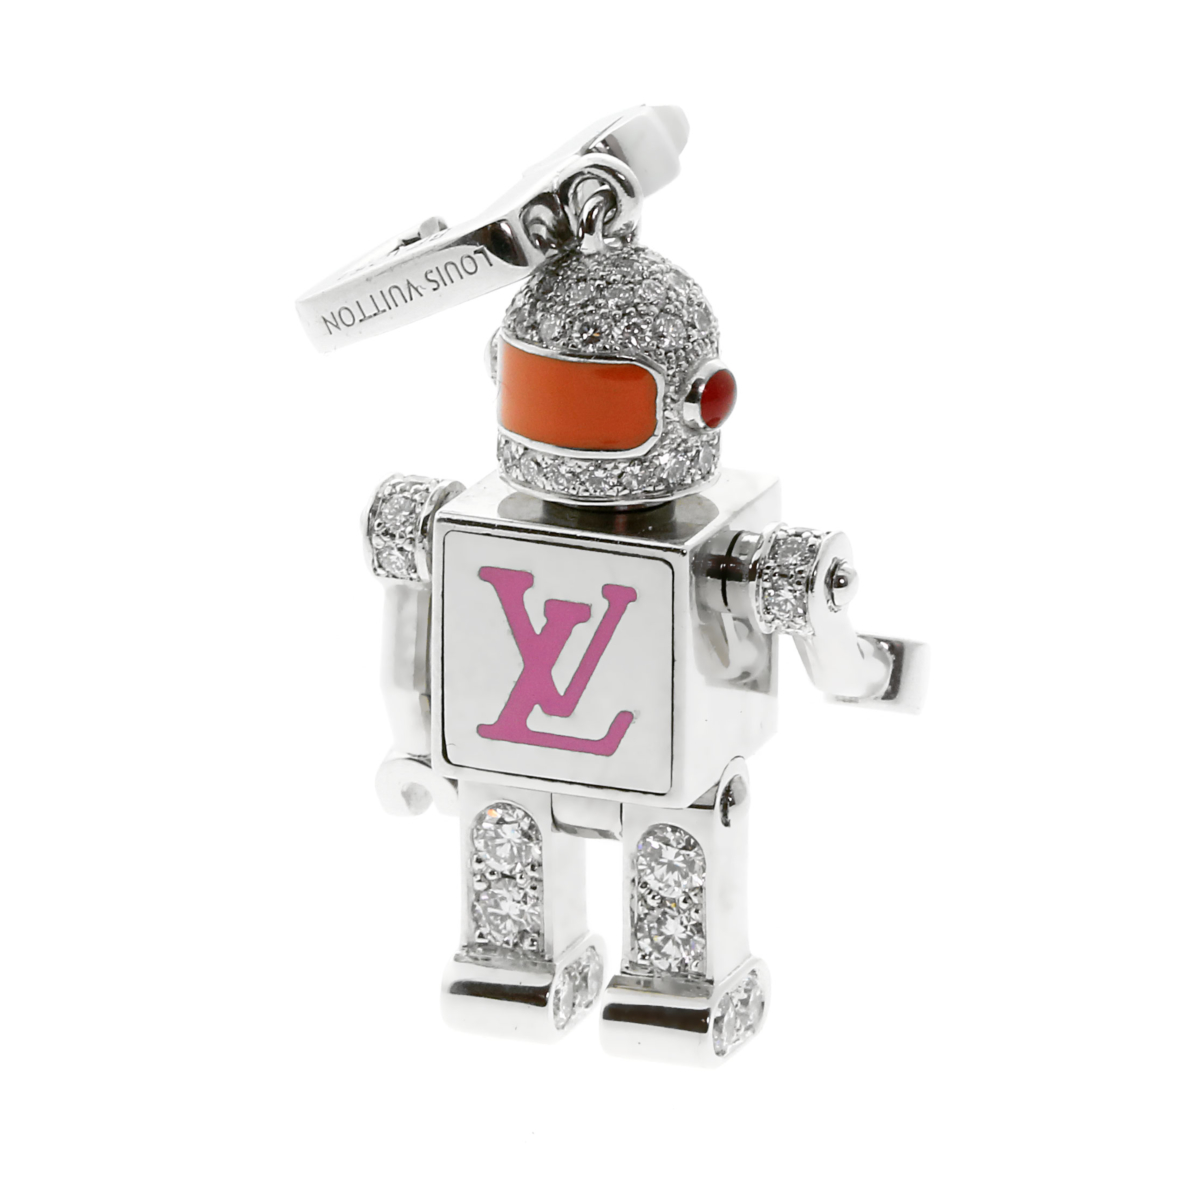 Louis Vuitton Diamond Spaceman Charm Pendant